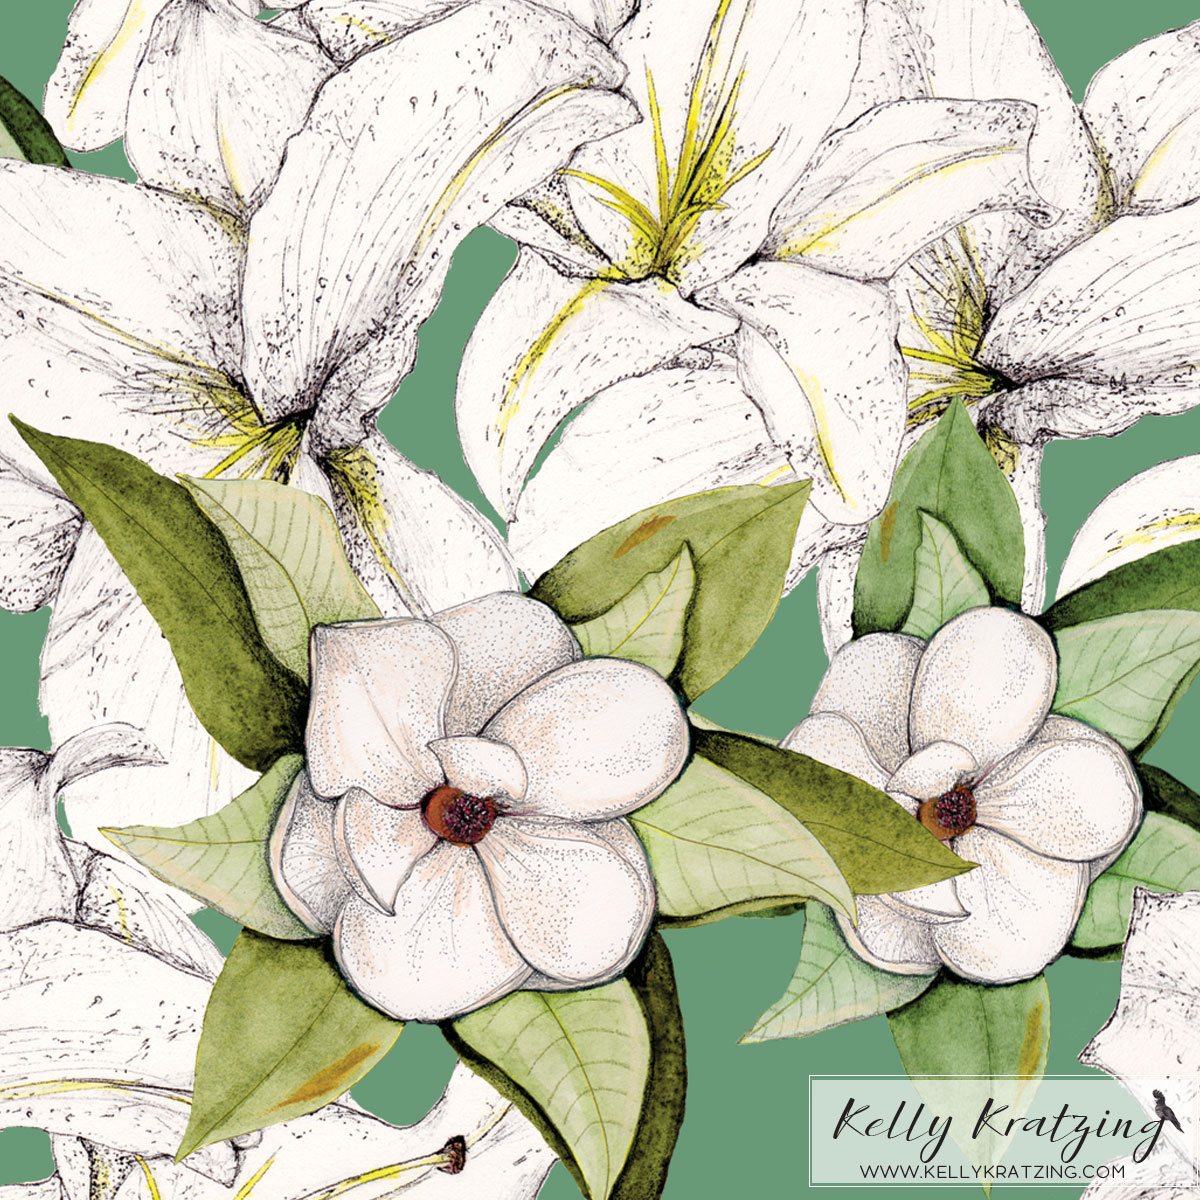 KELLY_KRATZING_SWEET-LILLIES_4